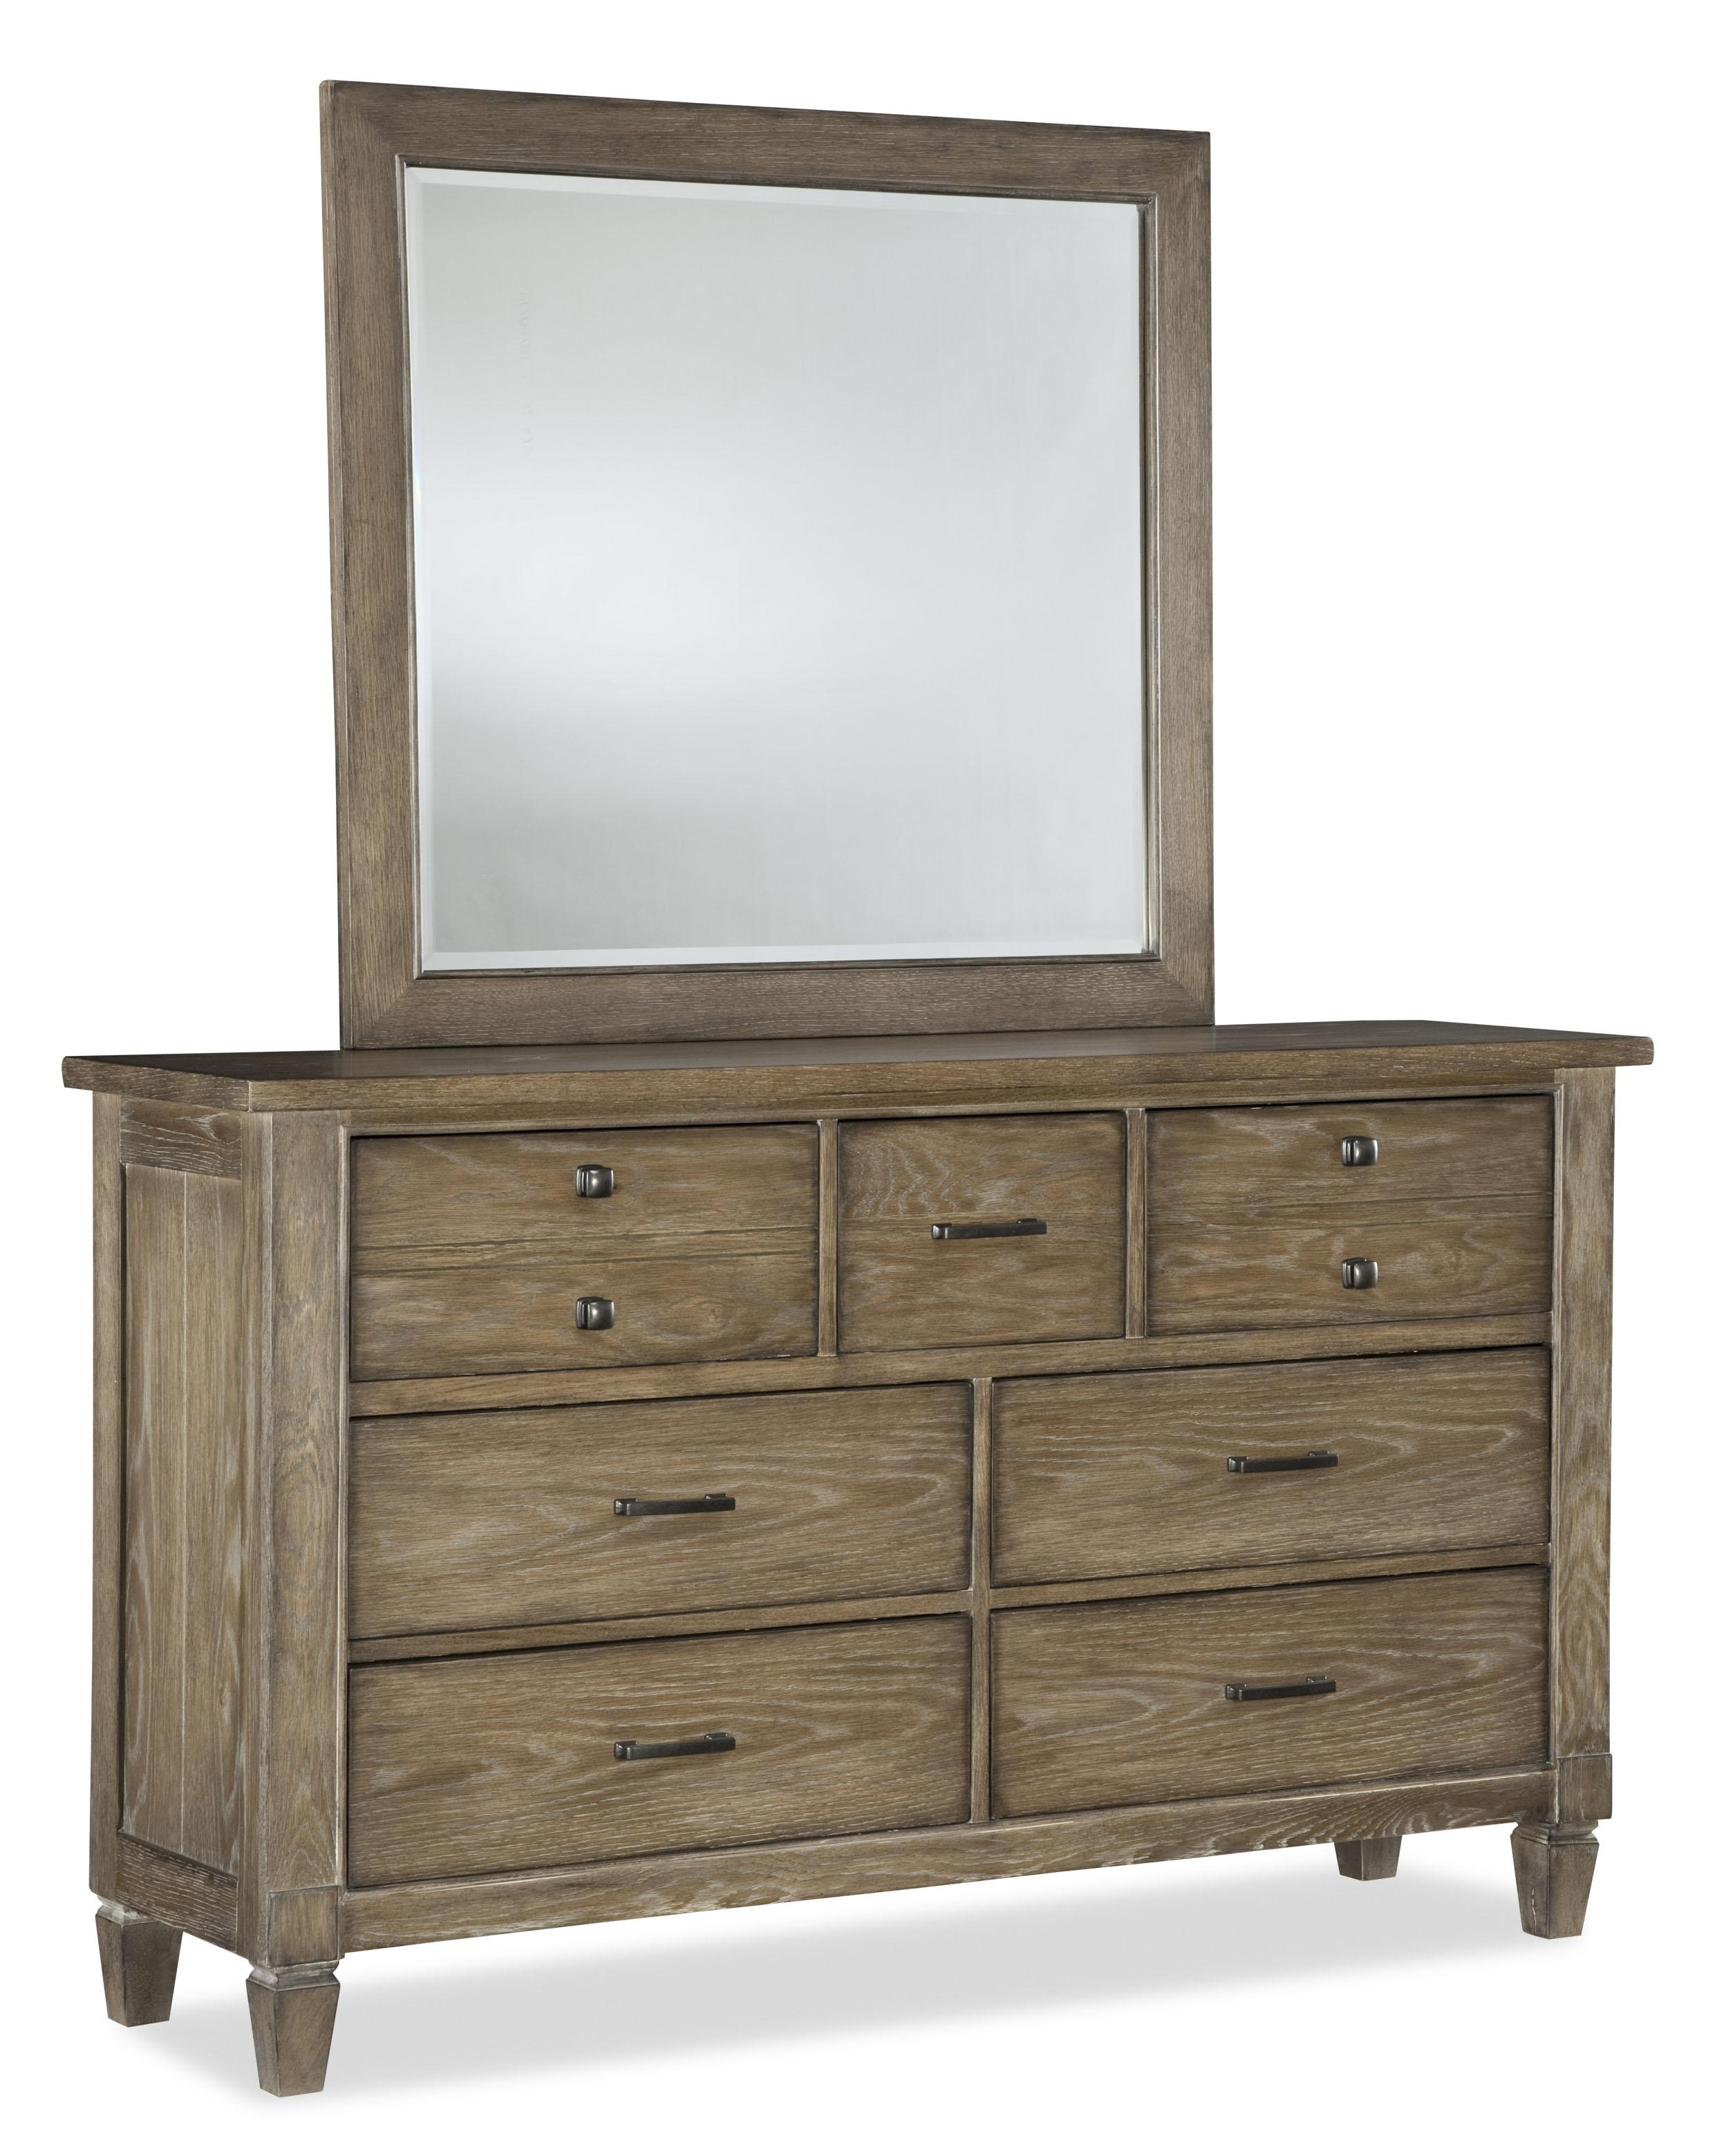 Legacy Classic Brownstone Village Dresser and Mirror Set - Item Number: 2760-1200+0100